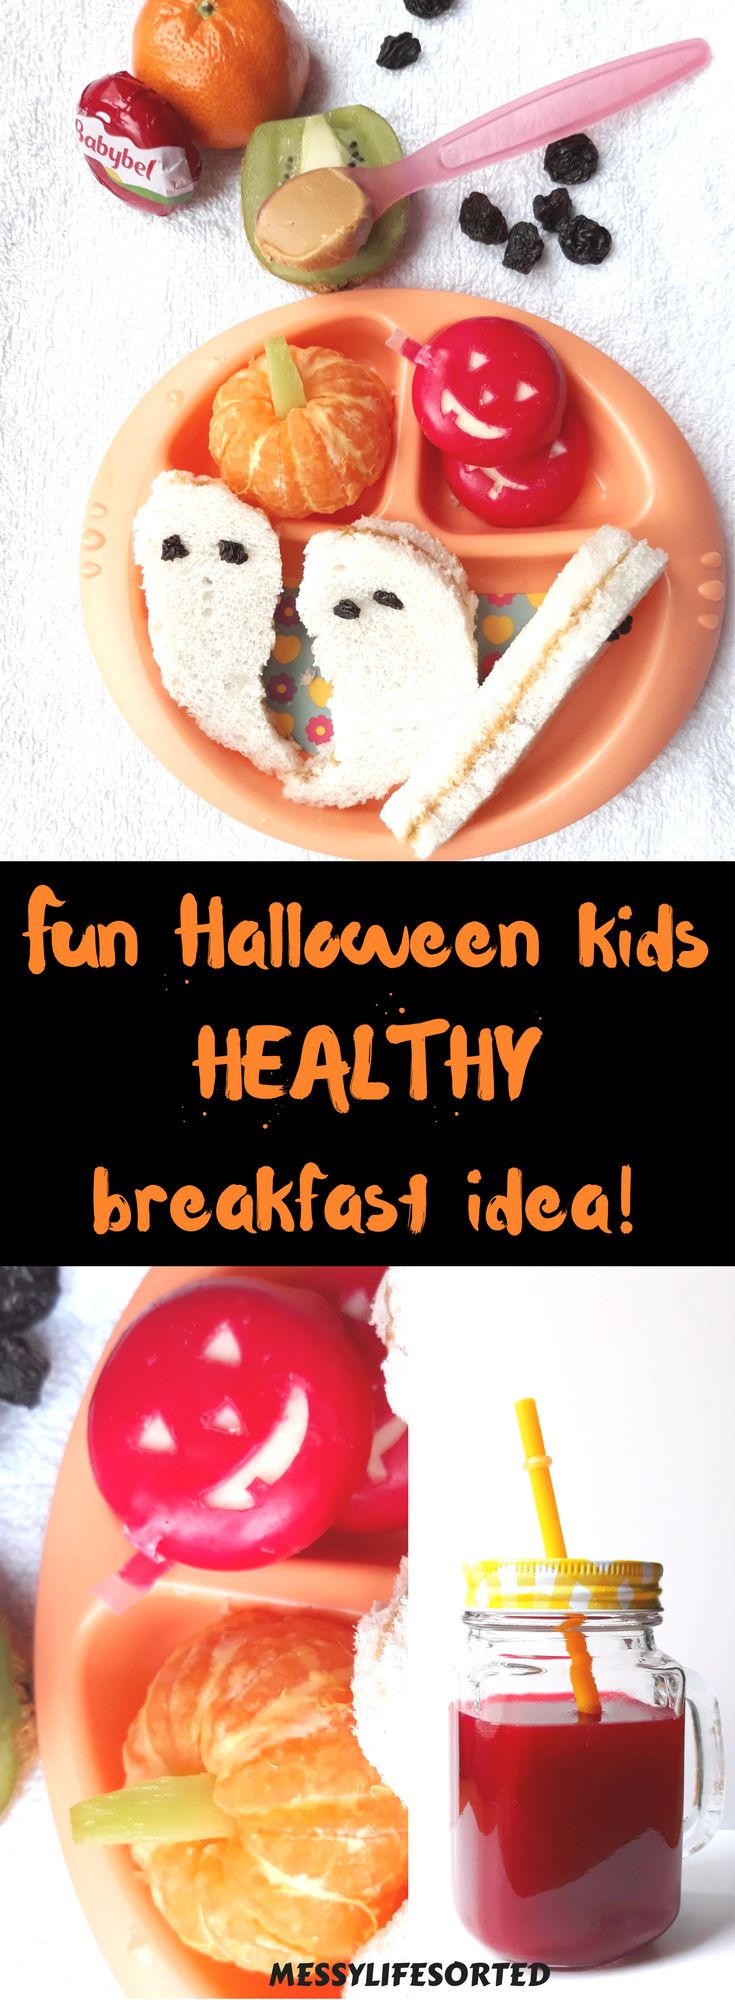 A healthy start to Halloween with this fun healthy breakfast idea for kids